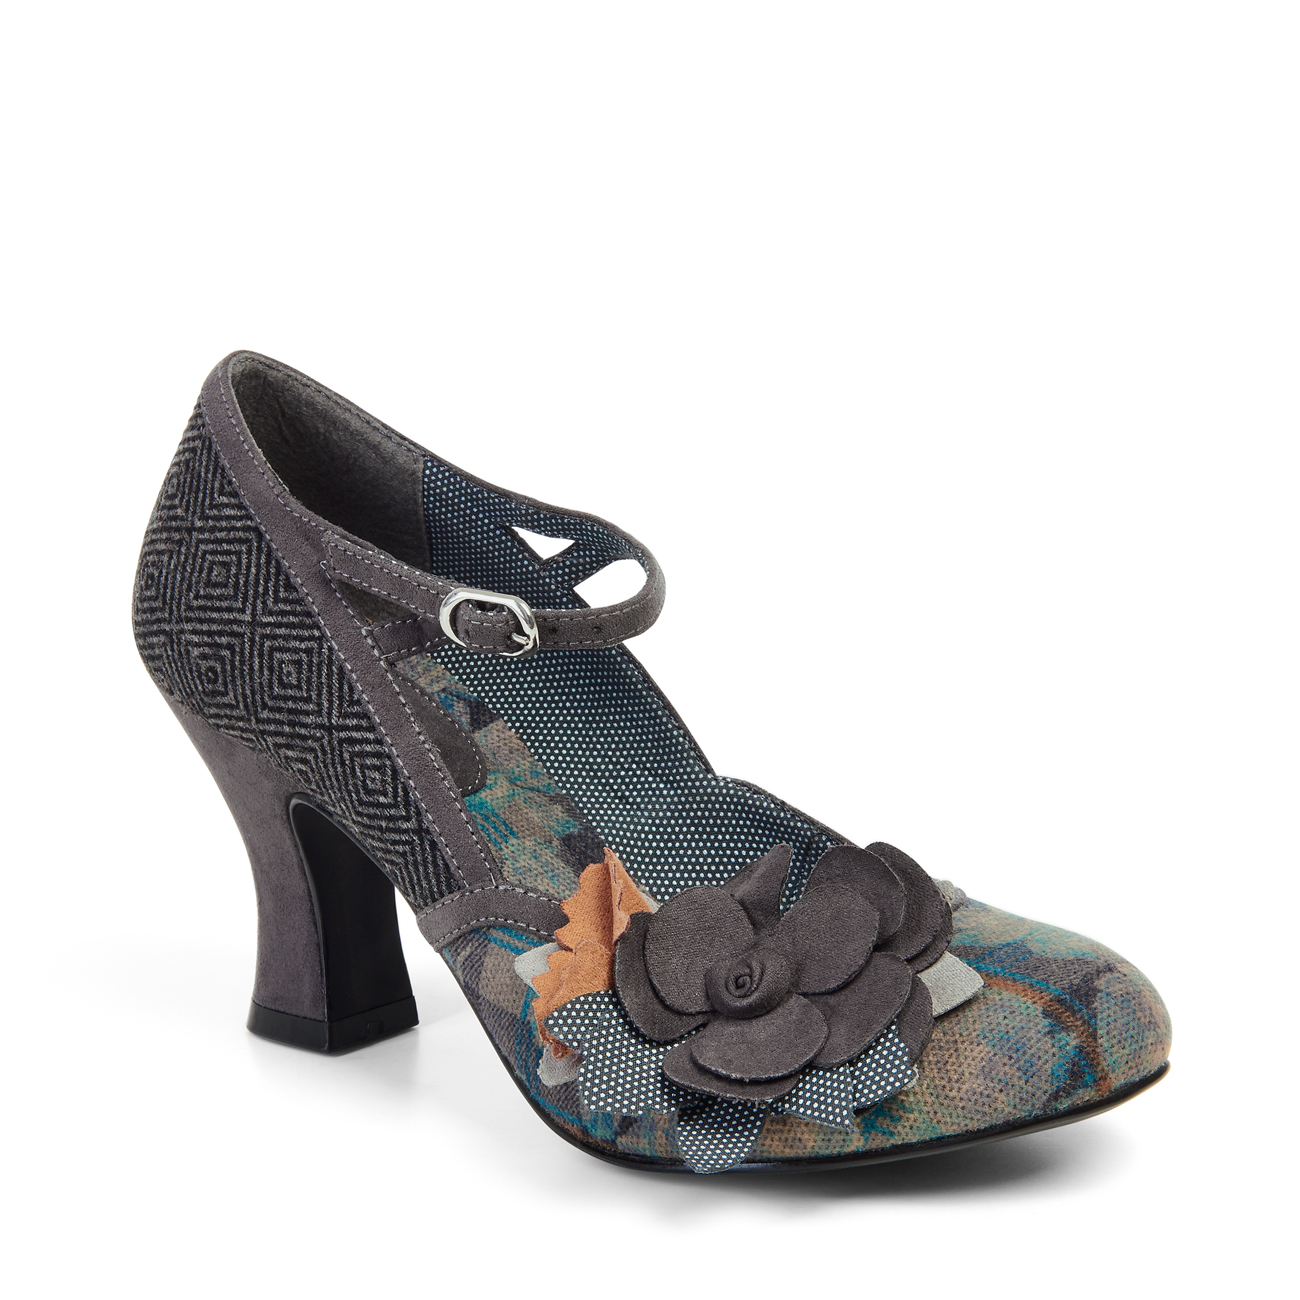 Ruby Shoo Dee Mid Heel Mary Jane Pumps Floral 3-9 36-42 4 Colours